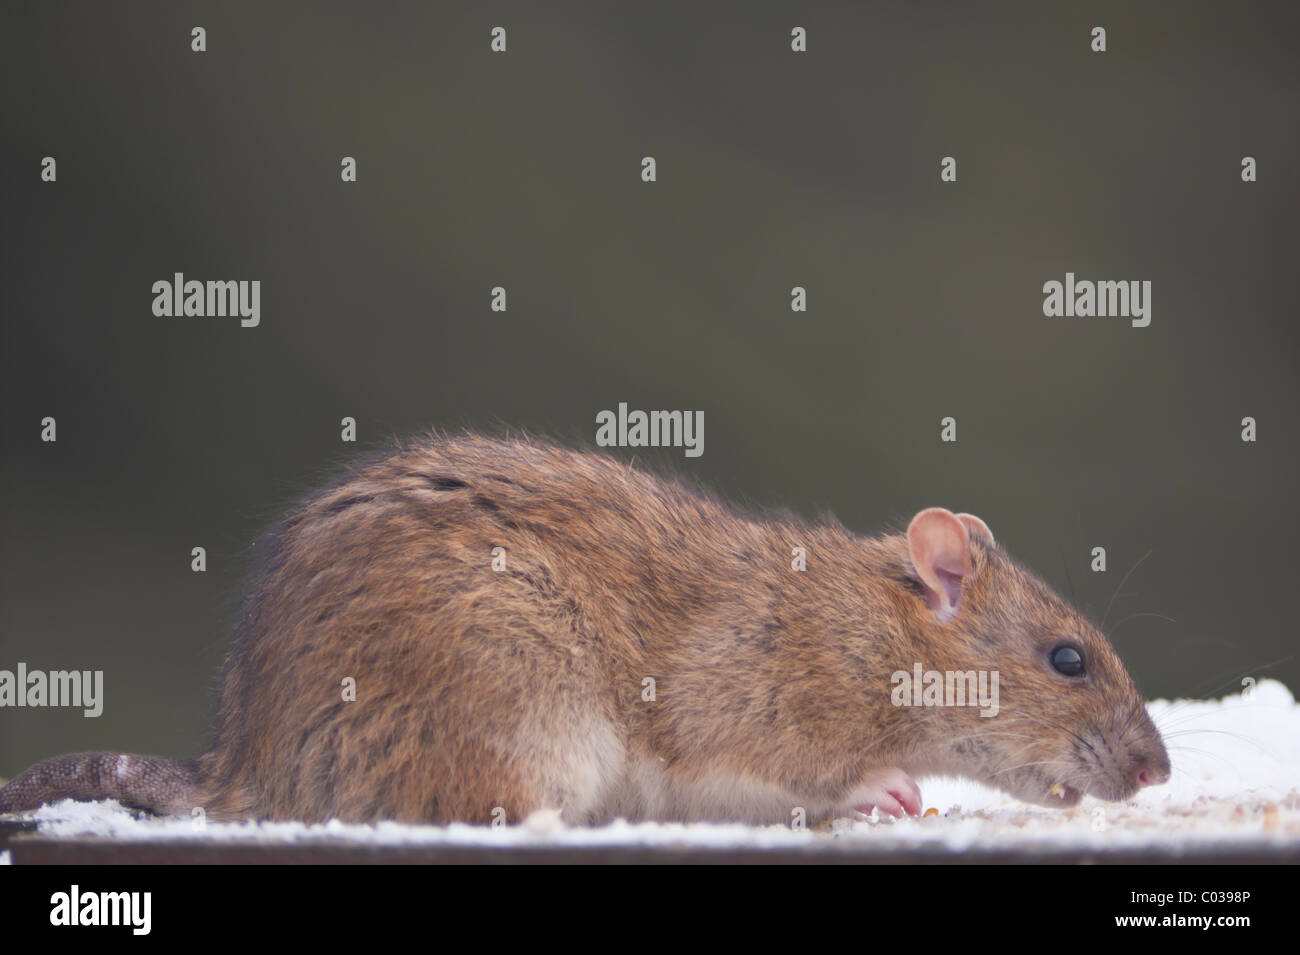 A Common Rat/ Brown Rat/ Norway Rat (Rattus norvegicus) feeding on a bird table with snow in the Uk - Stock Image